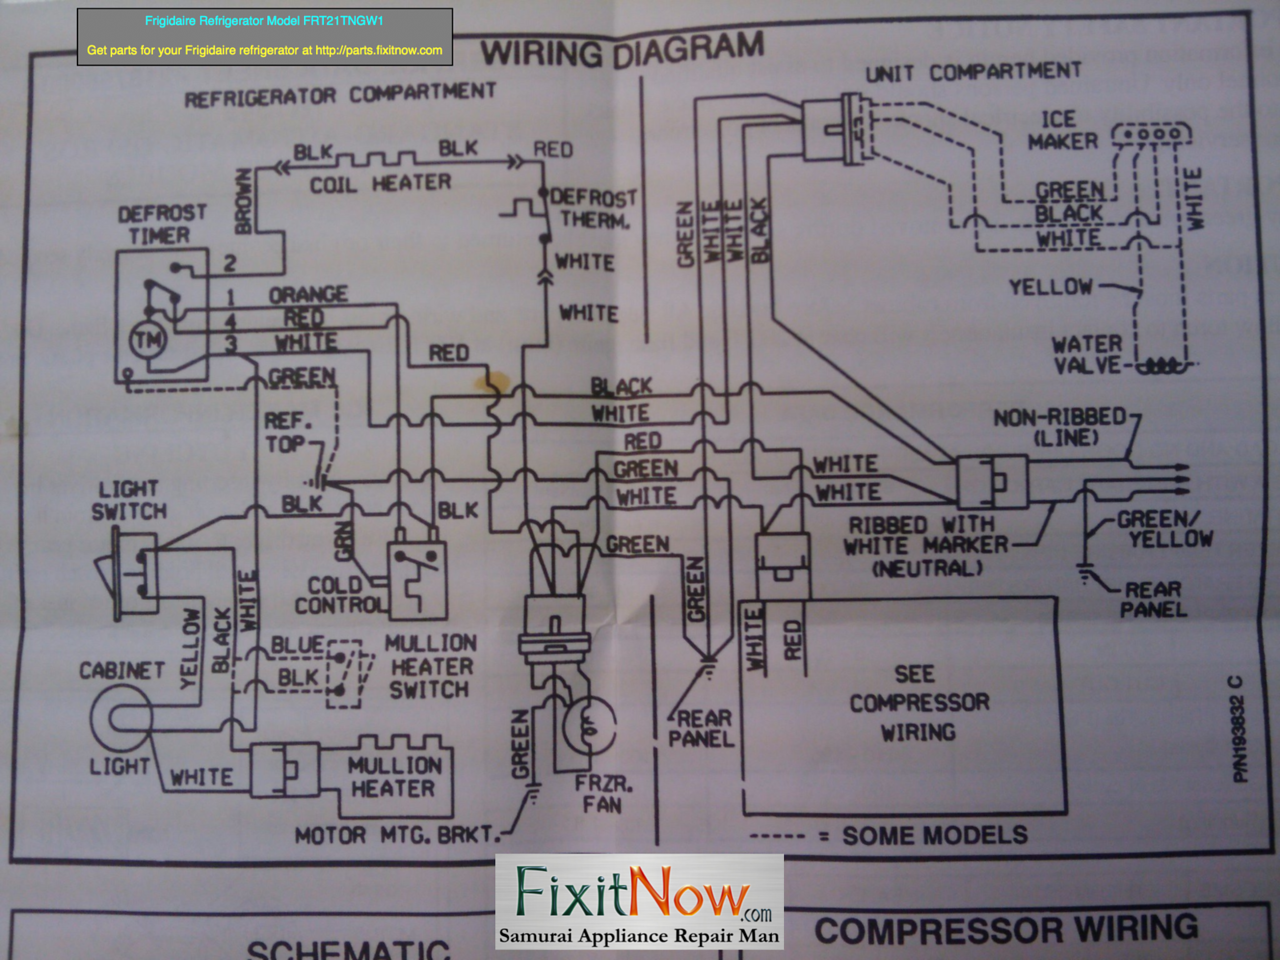 4927632513_66c123c922_o X2 wiring diagram for ge refrigerator readingrat net ge wiring schematics at alyssarenee.co